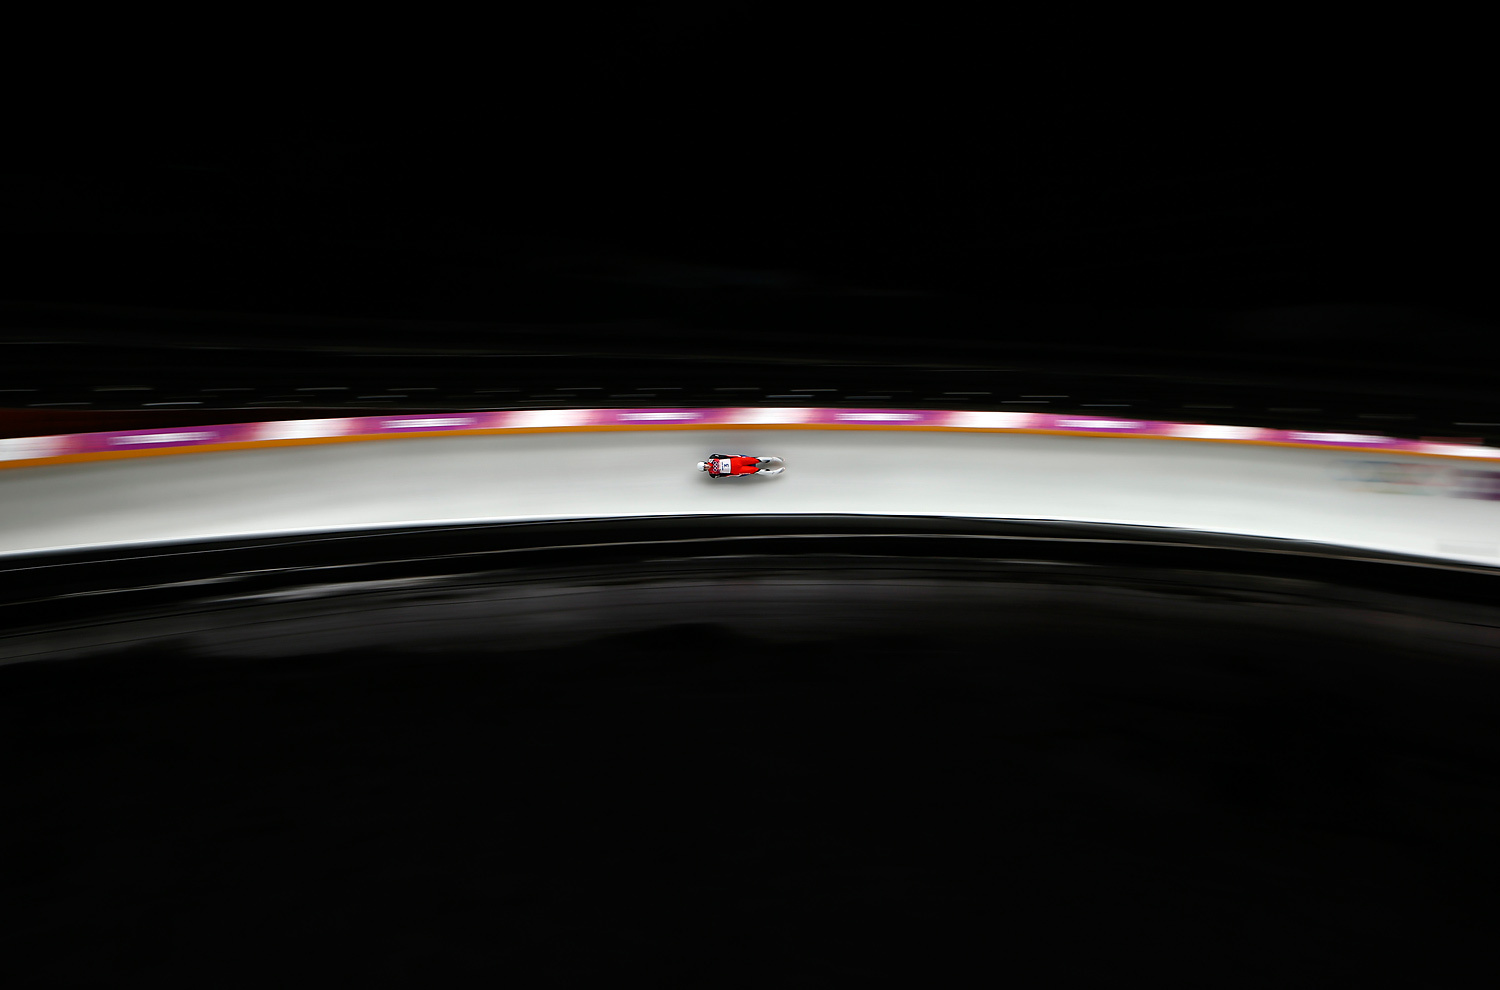 Austria's Reinhard Egger speeds down the track in the men's singles luge competition at the 2014 Sochi Winter Olympics February 9, 2014.